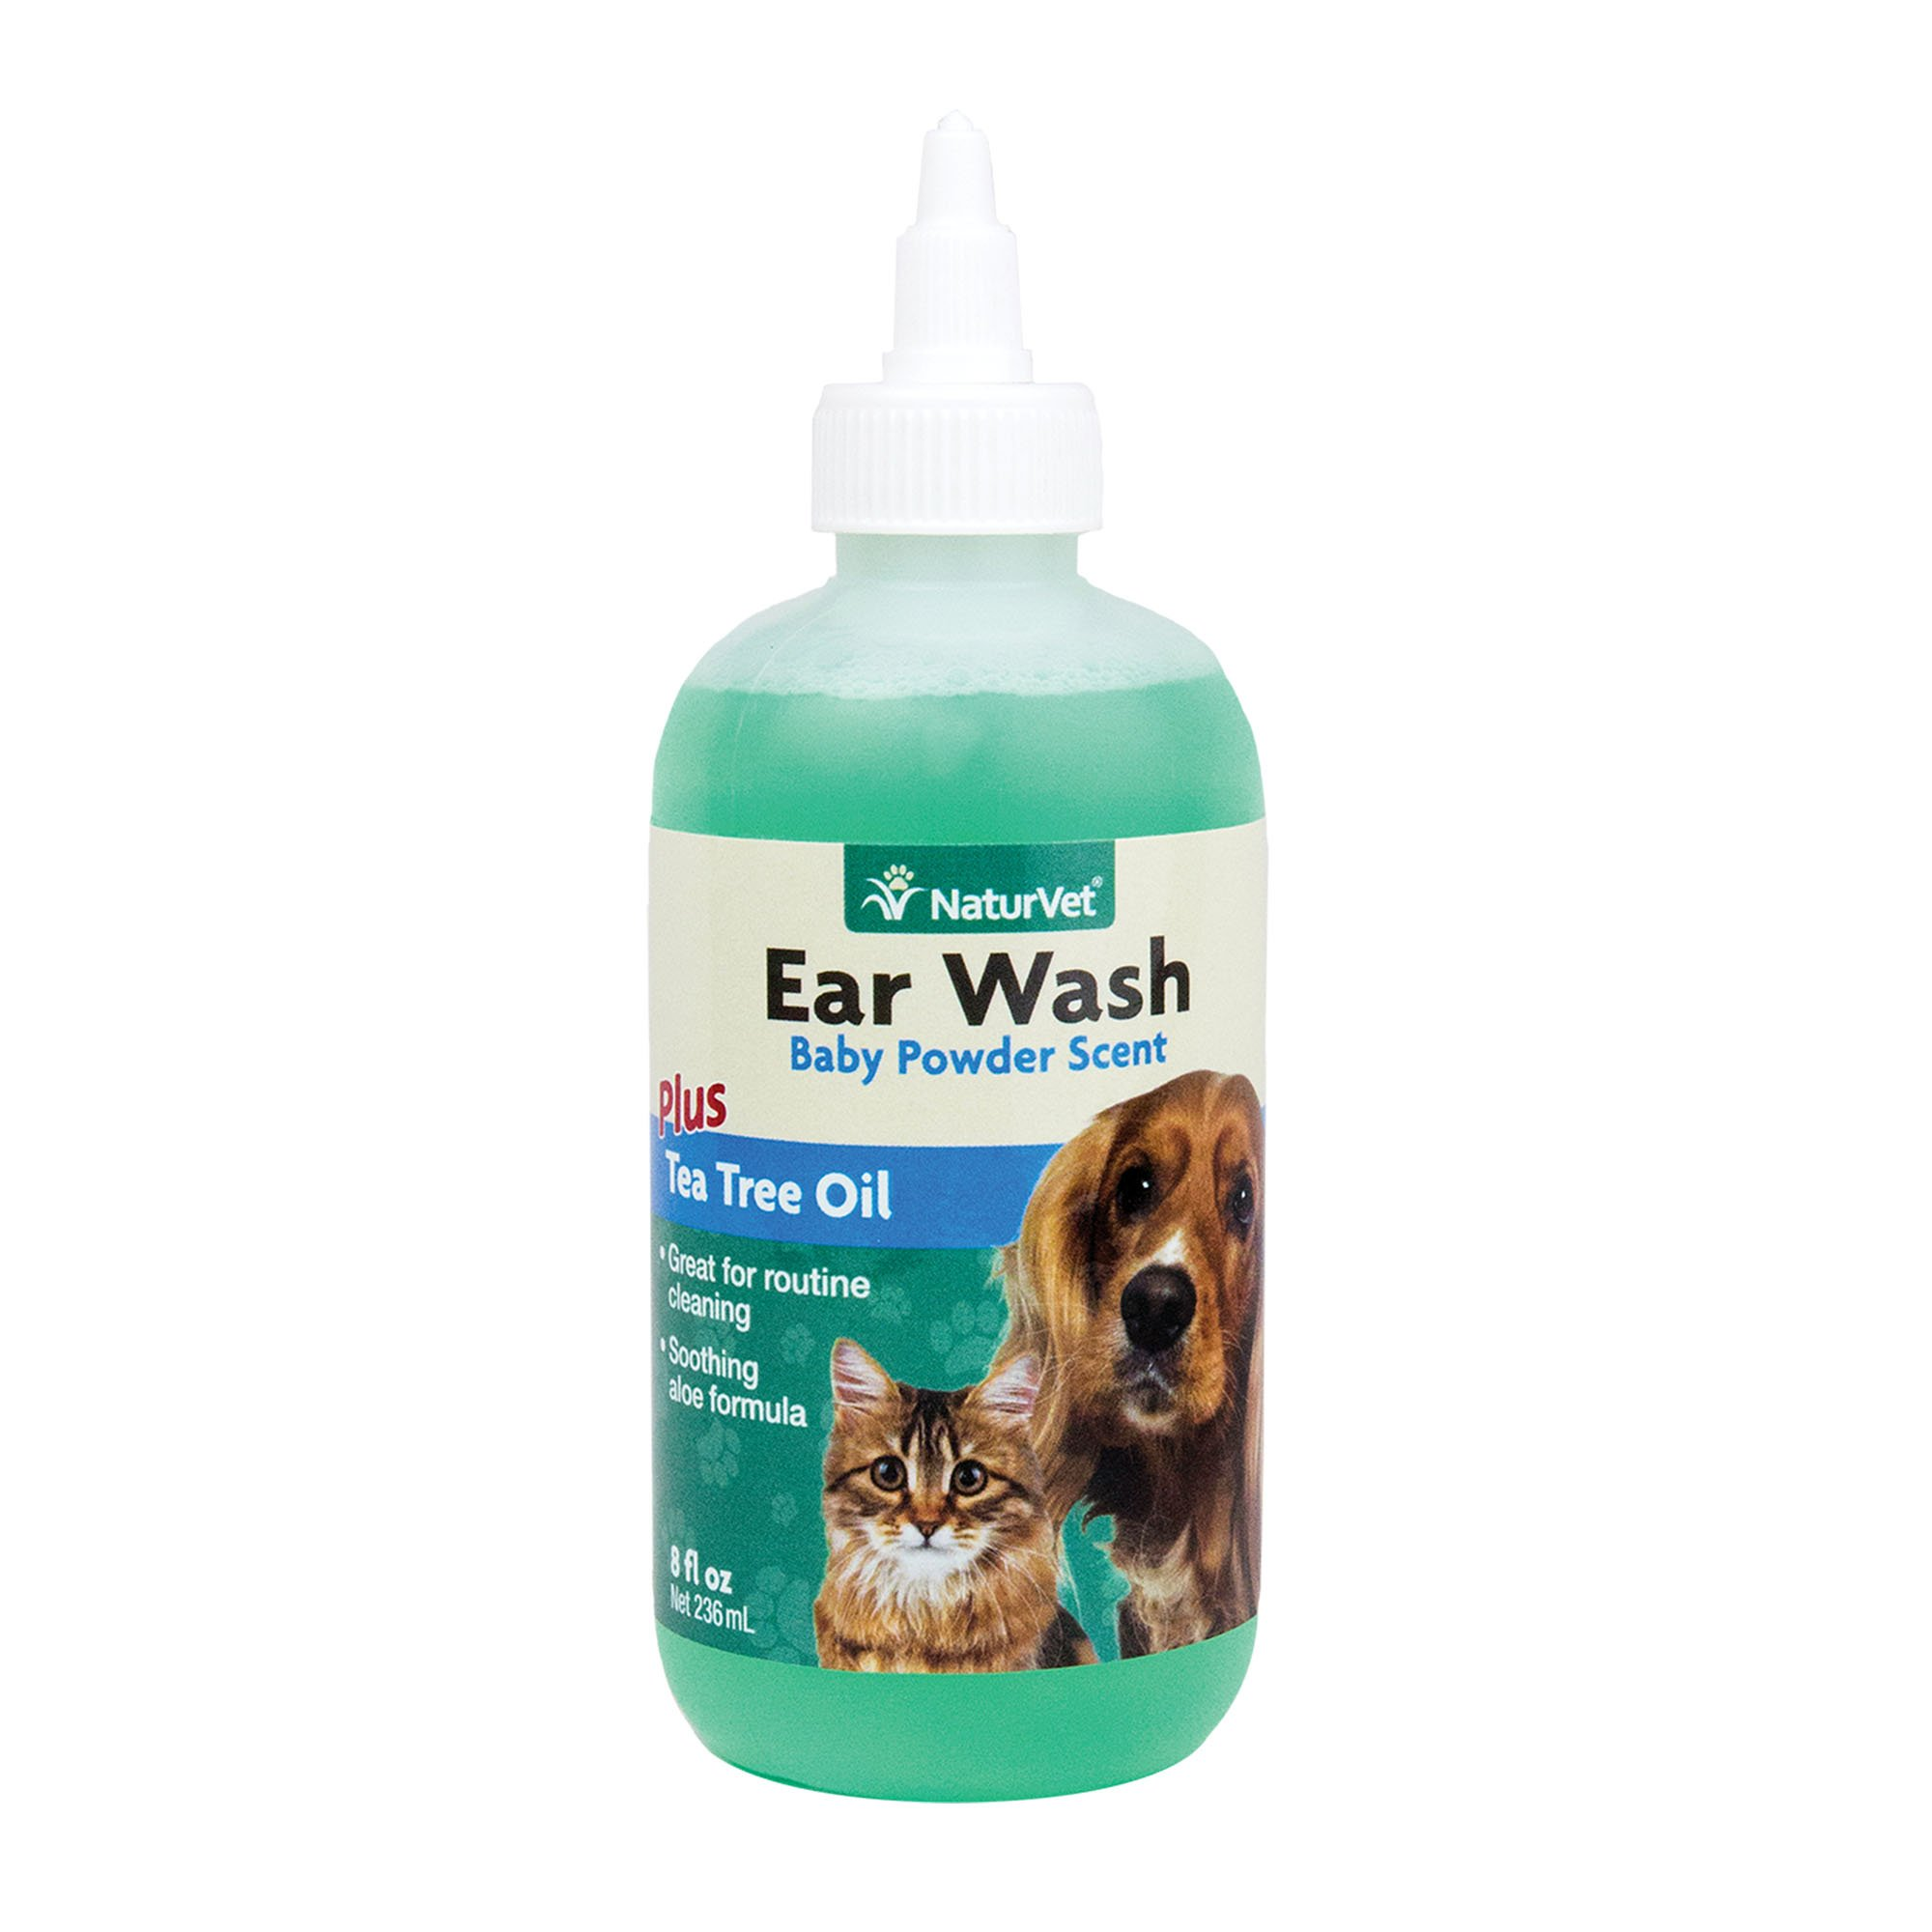 NaturVet Gentle Pet Ear Wash & Odor Reducing Treatment with Aloe & Tea Tree Oil, Safe for All Dogs & Cats, Made